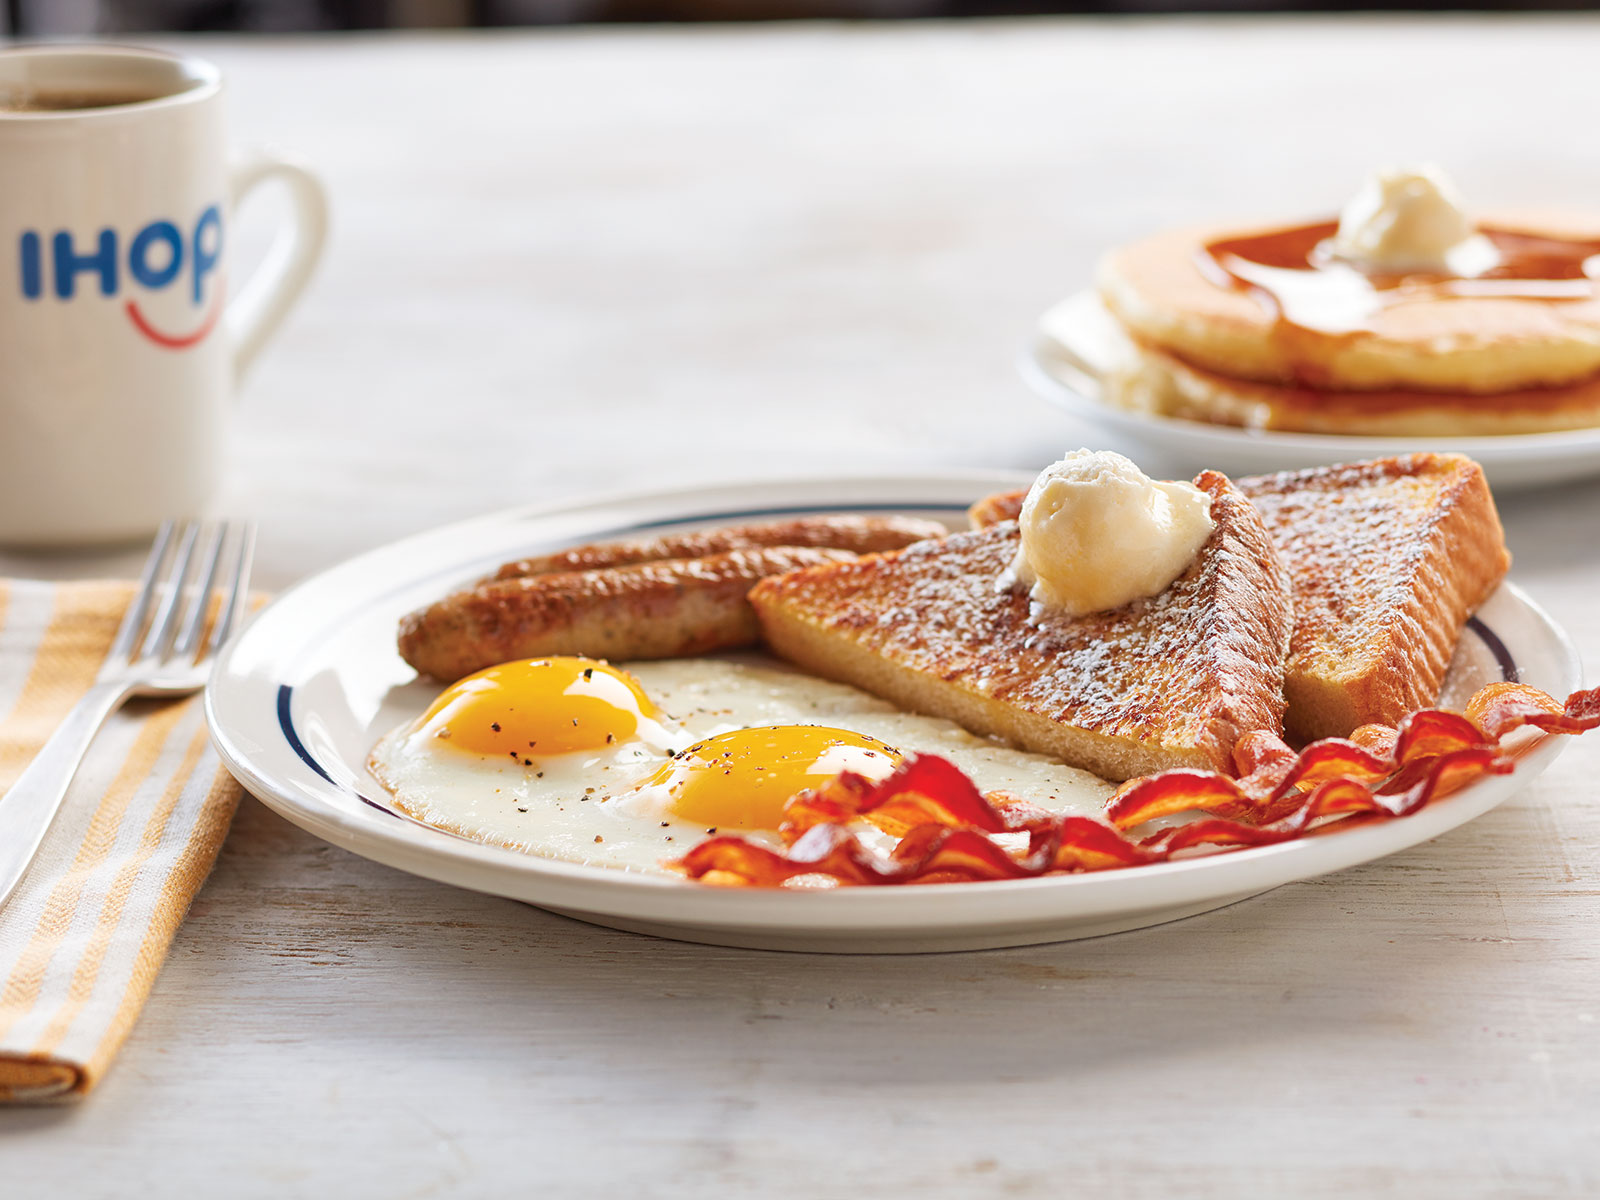 ihop food delivery trial